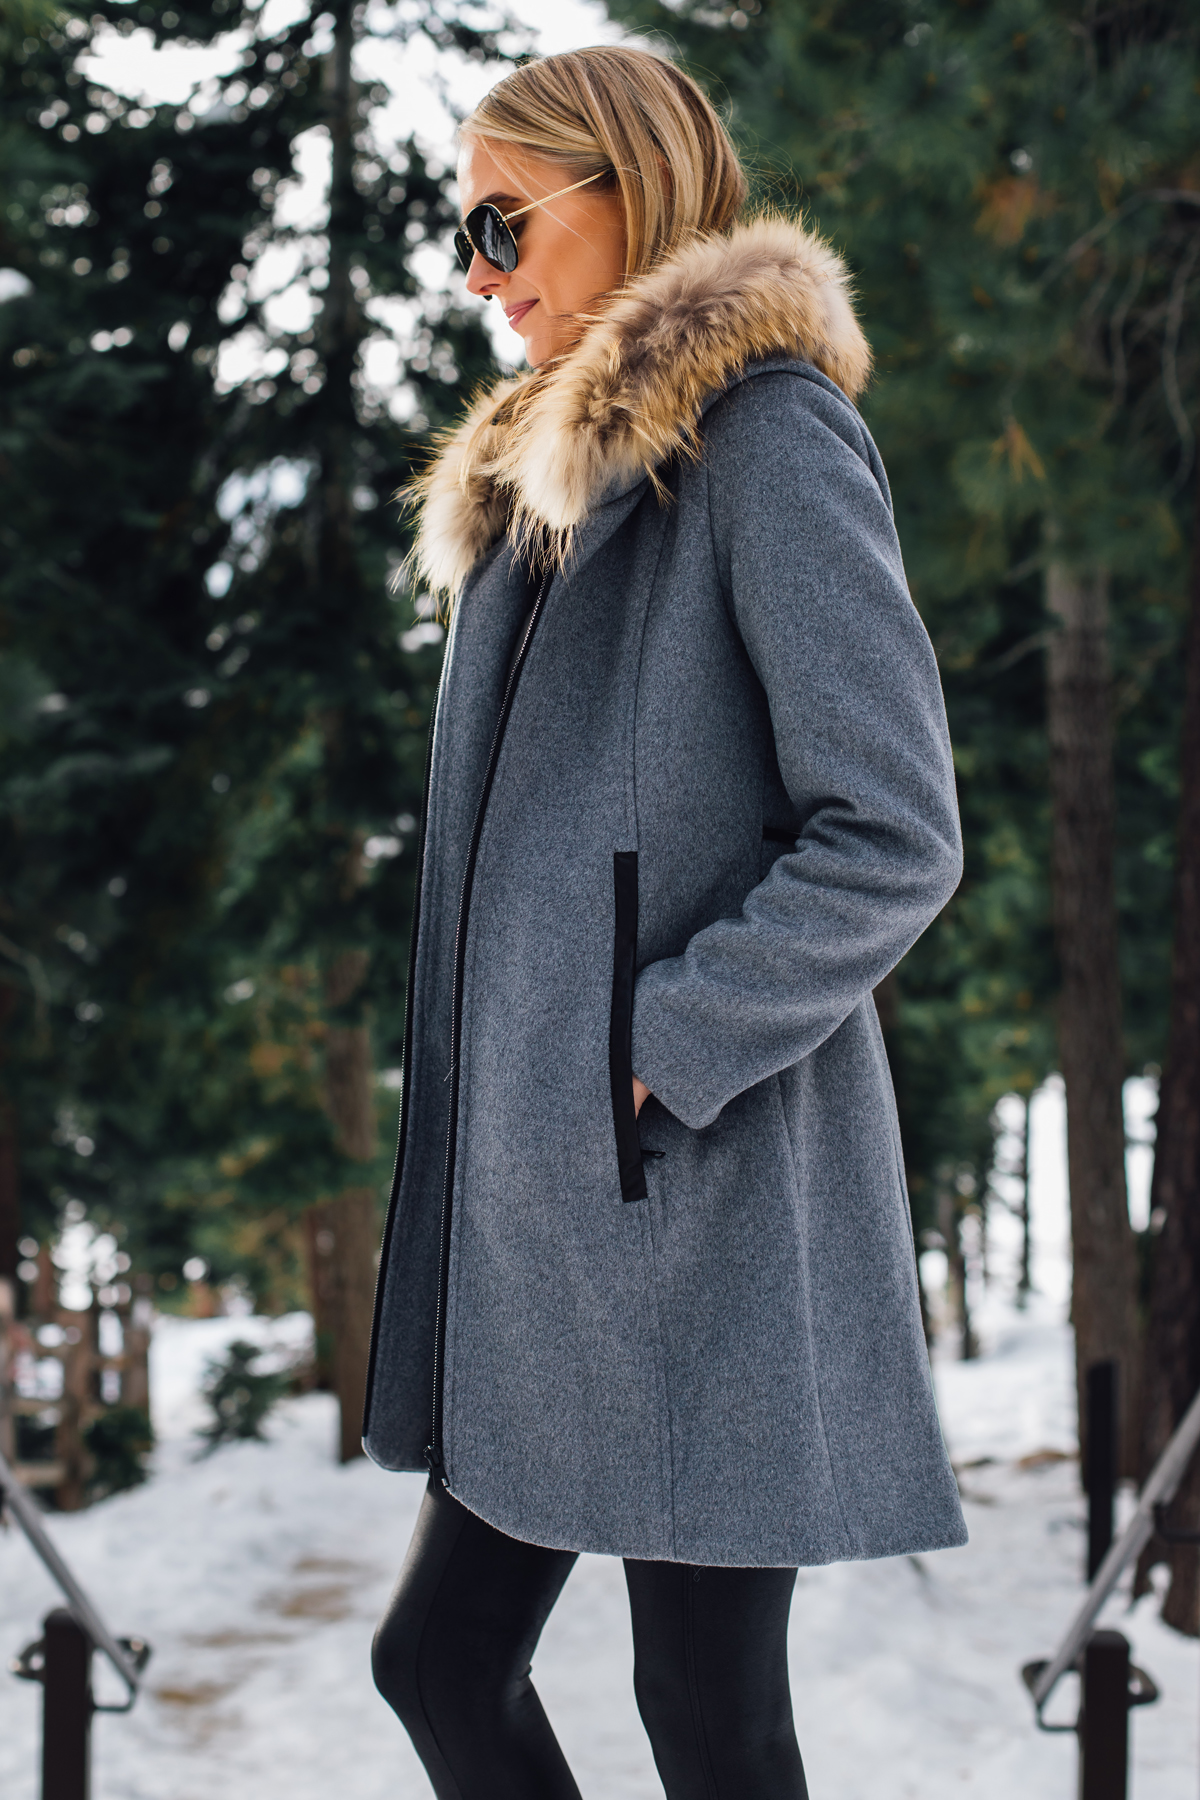 Blonde Woman Wearing Grey Wool Coat with Faux Fur Hood Fashion Jackson San Diego Fashion Blogger Lake Tahoe Winter Outfit